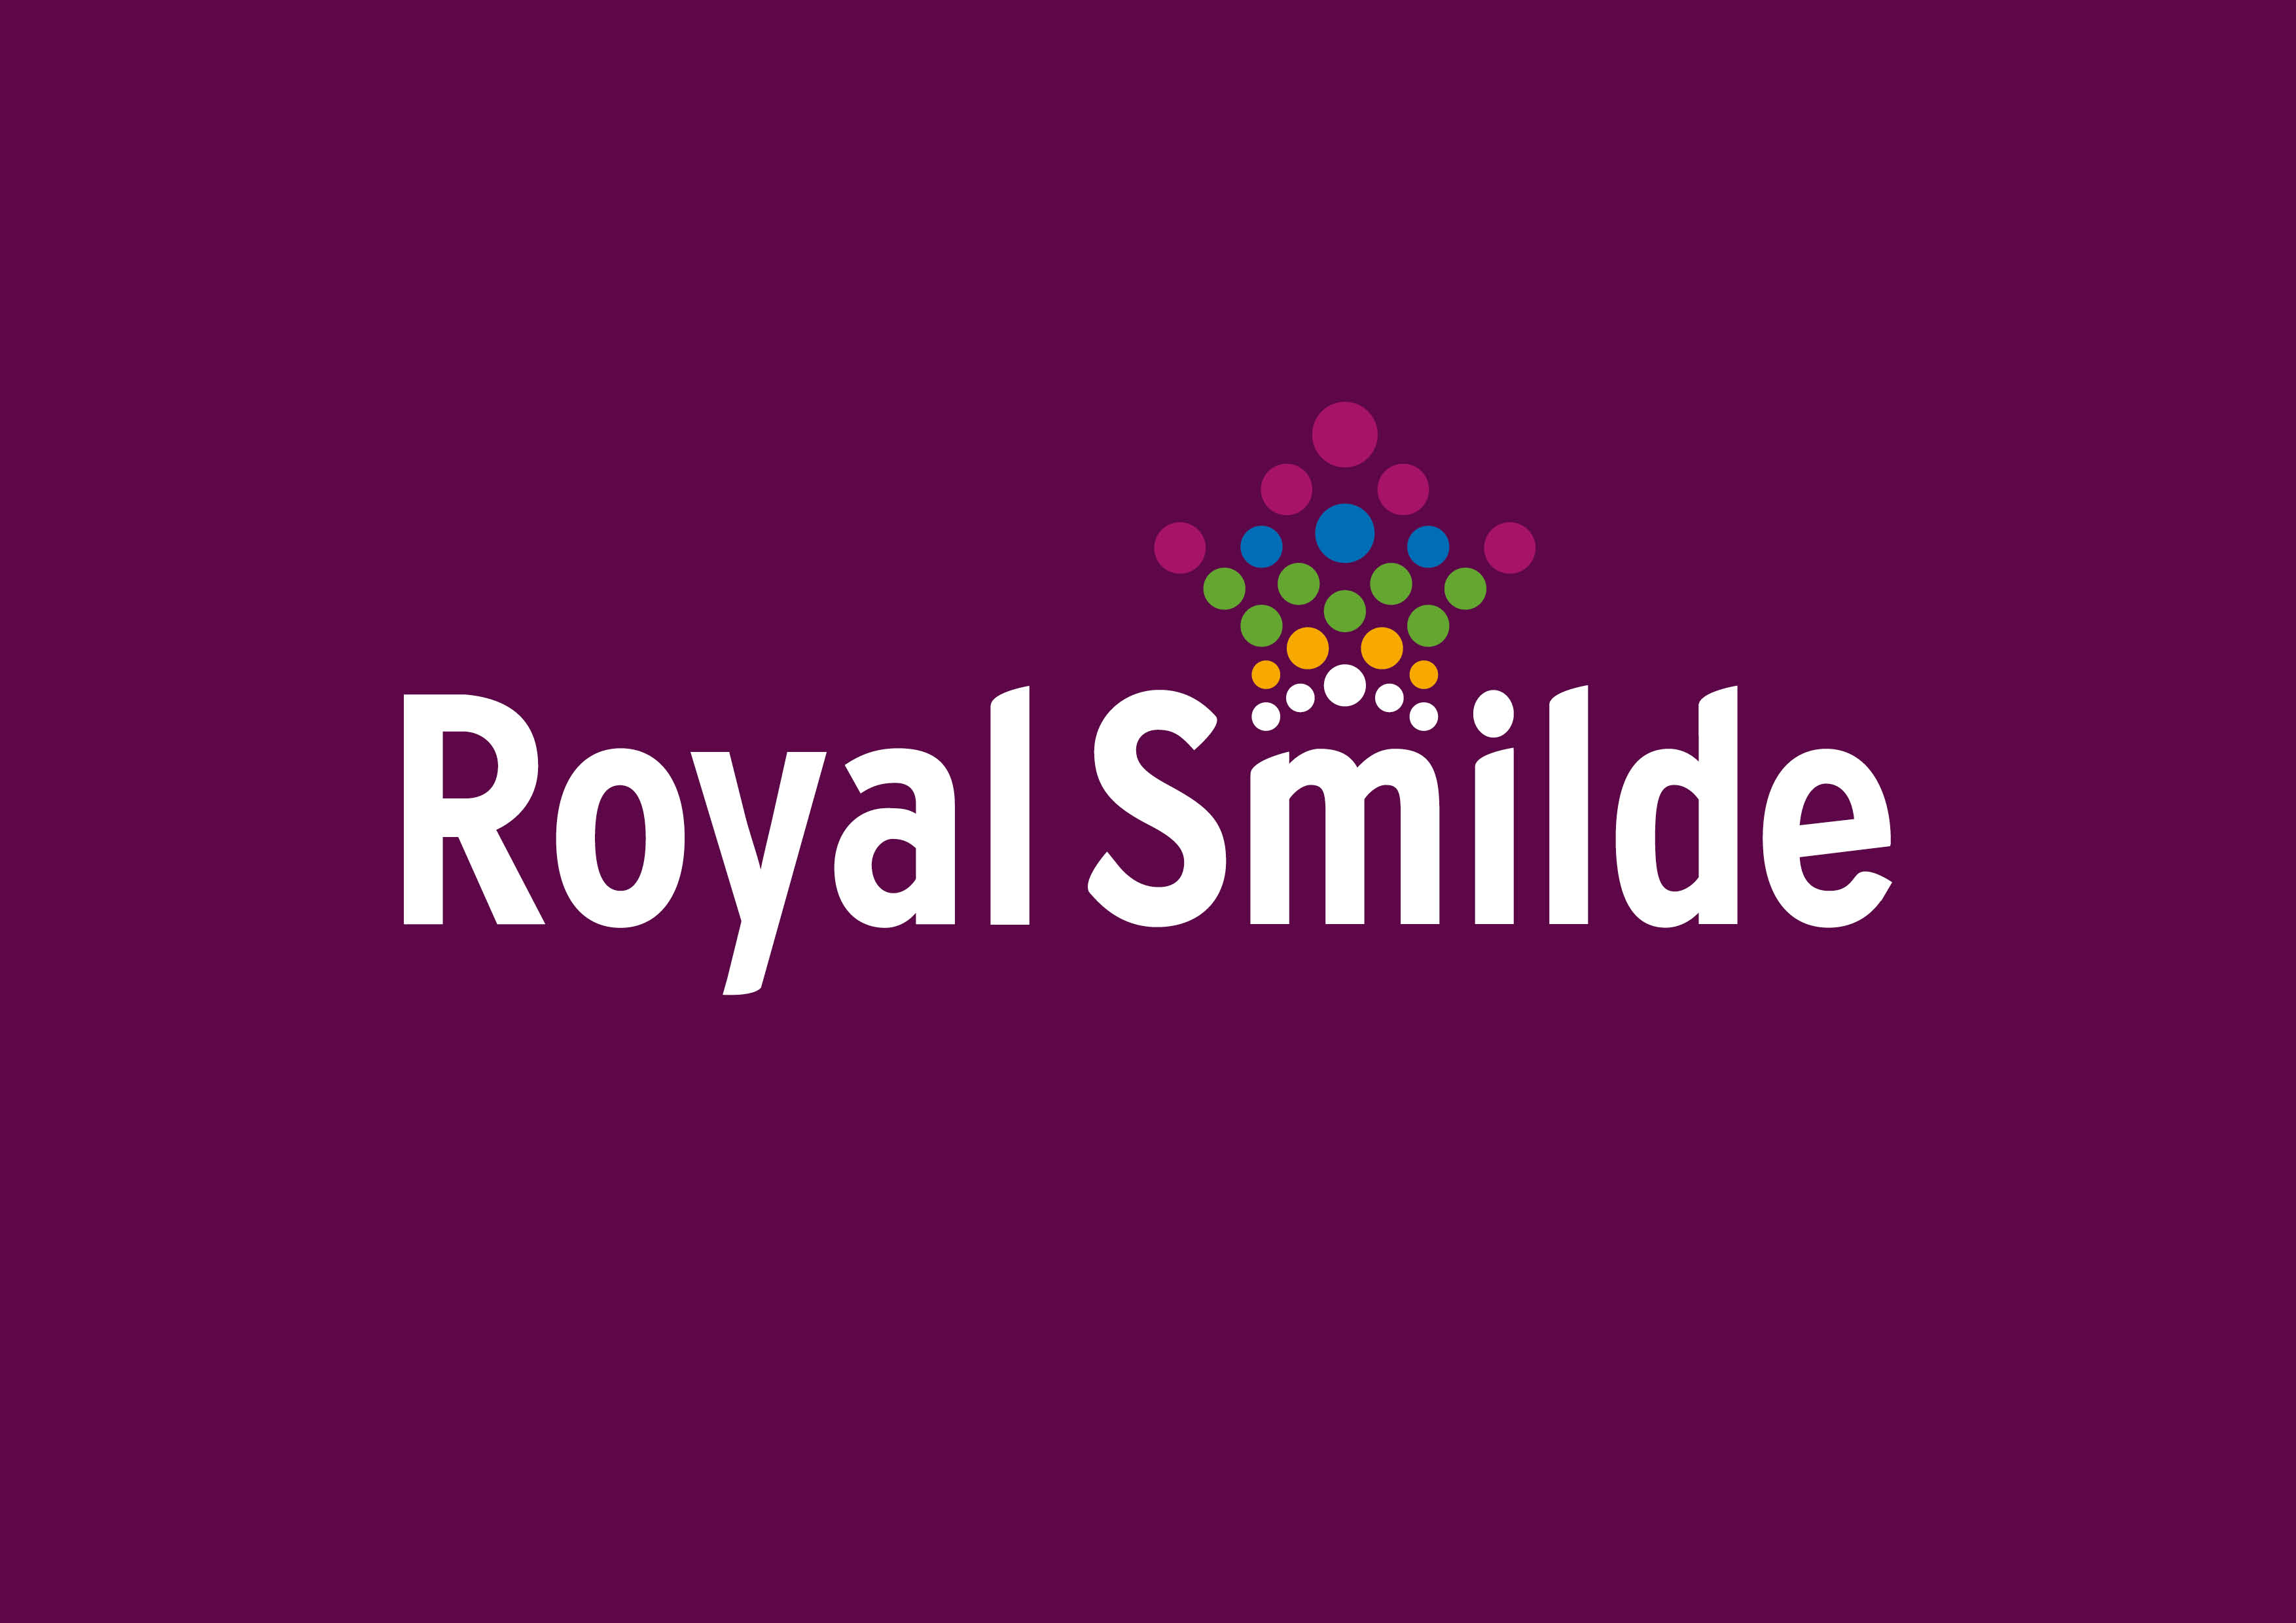 Royal Smilde